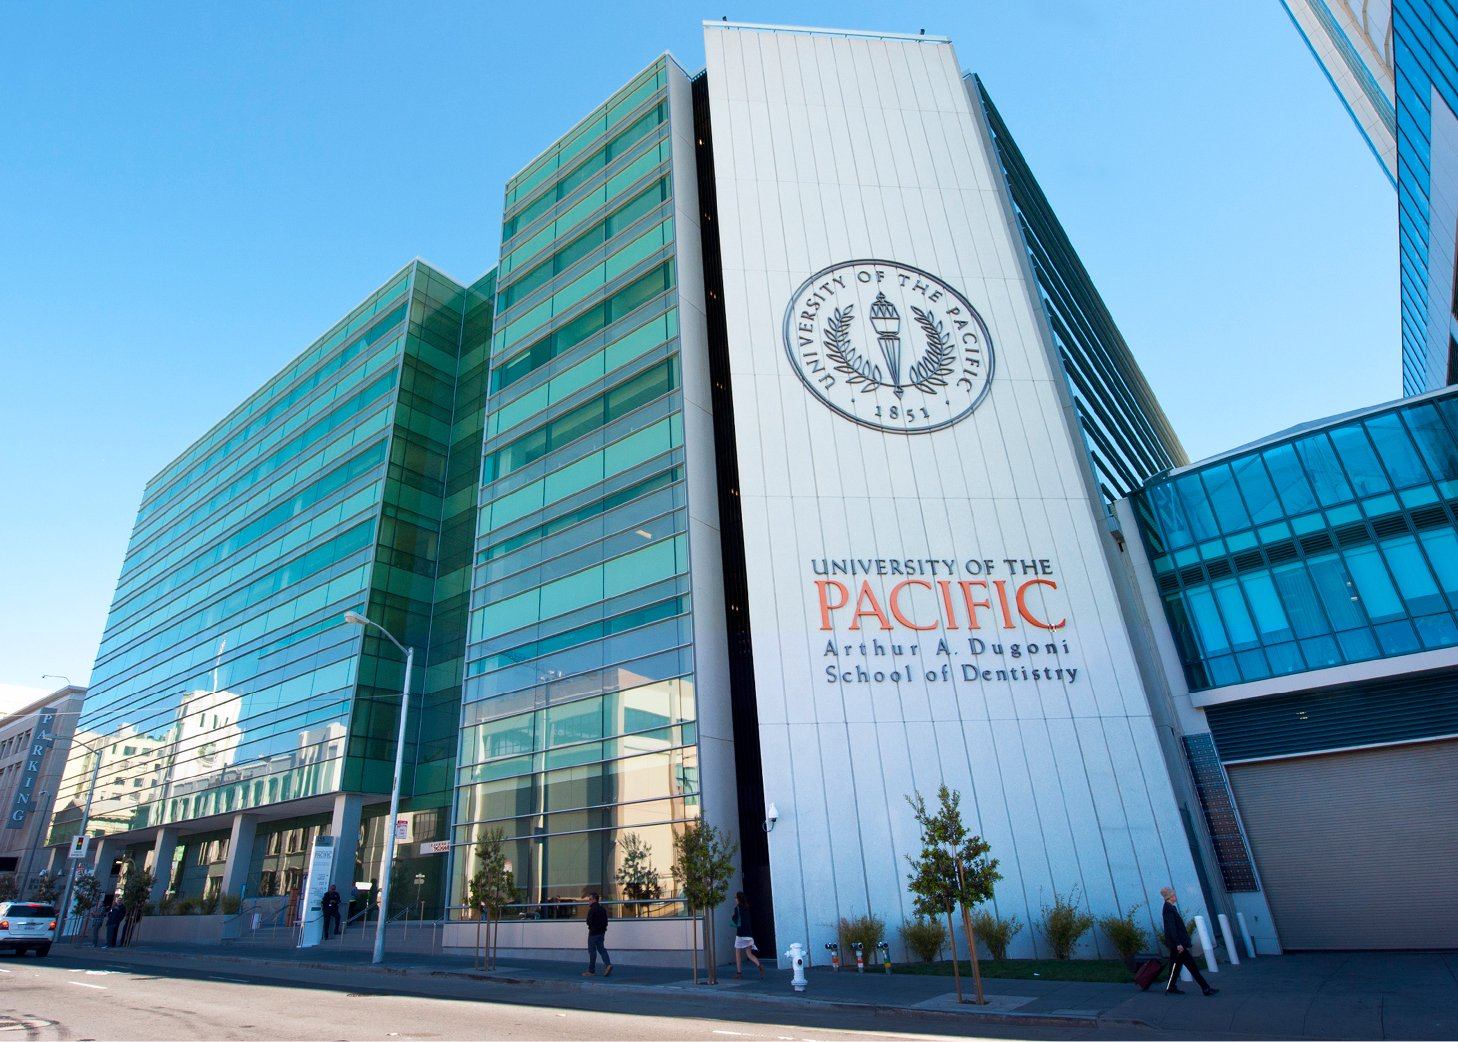 USA – University of the Pacific – Arthur A Dugoni School of